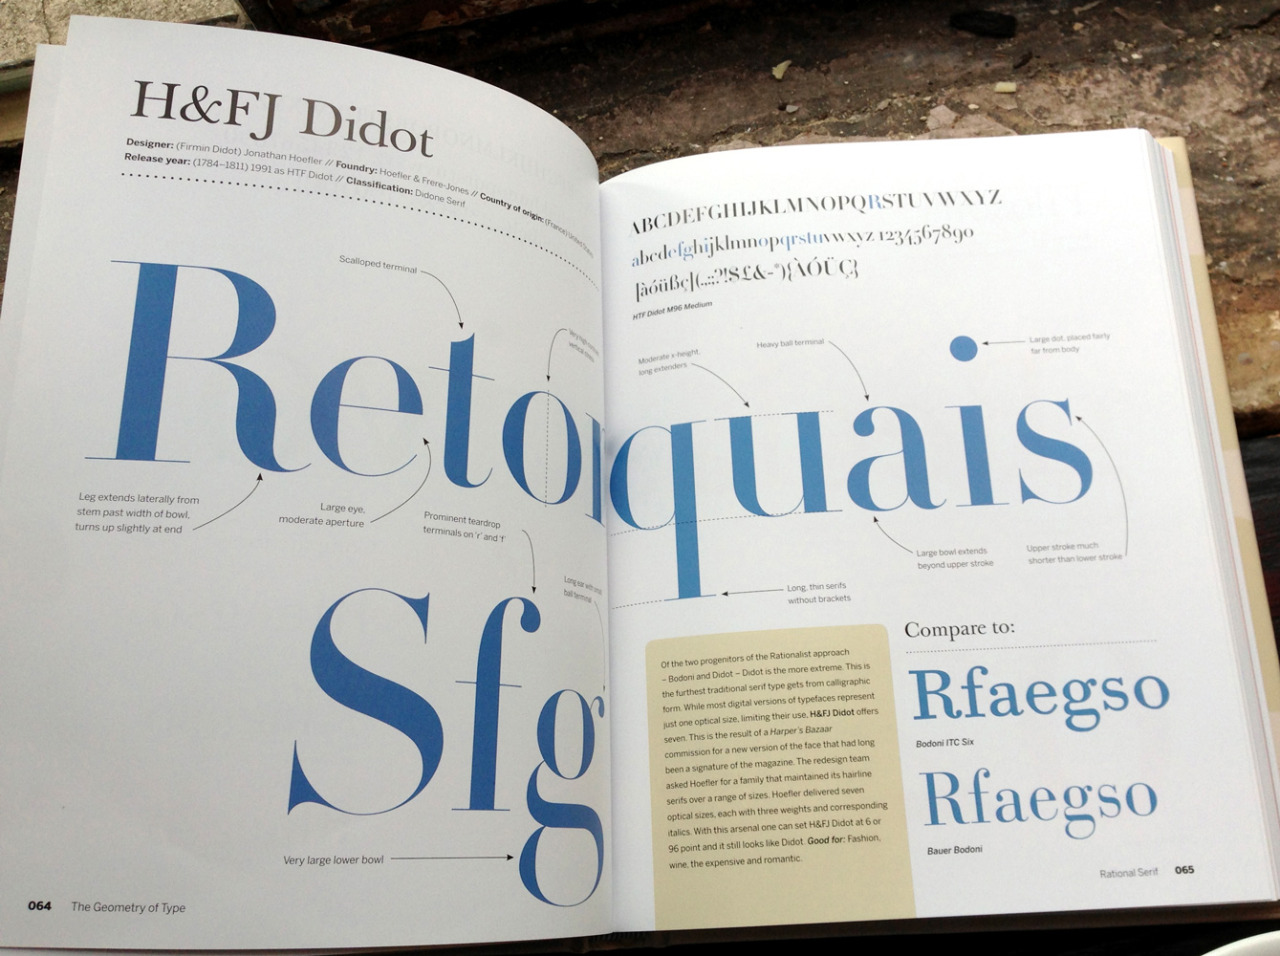 betype:  Book Review by typeworship : The Geometry of Type  There are many things I like about Stephen Coles' recent book; the bright, clean design and the accessible structure allowing you to dip in and out; but most of all, it's the lack of fluff or filler. The content has been carefully honed to focus on the important details, which is in fact what the book is all about: the details of each typeface. In highlighting and comparing the features that give each typeface its character, anyone exploring this subject can begin to make informed choices between similar typeface options. The pithy descriptions describe each typeface's origin and advise what makes each appropriate for certain scenarios and where it might fail. These are occasionally laced with a subtle humour that keeps the tone of the book warm. The great balance of written and visual explanation means the book works well as a quick reference but has a seductive way of drawing you in to read more and examine further. We'll worth picking up a copy.